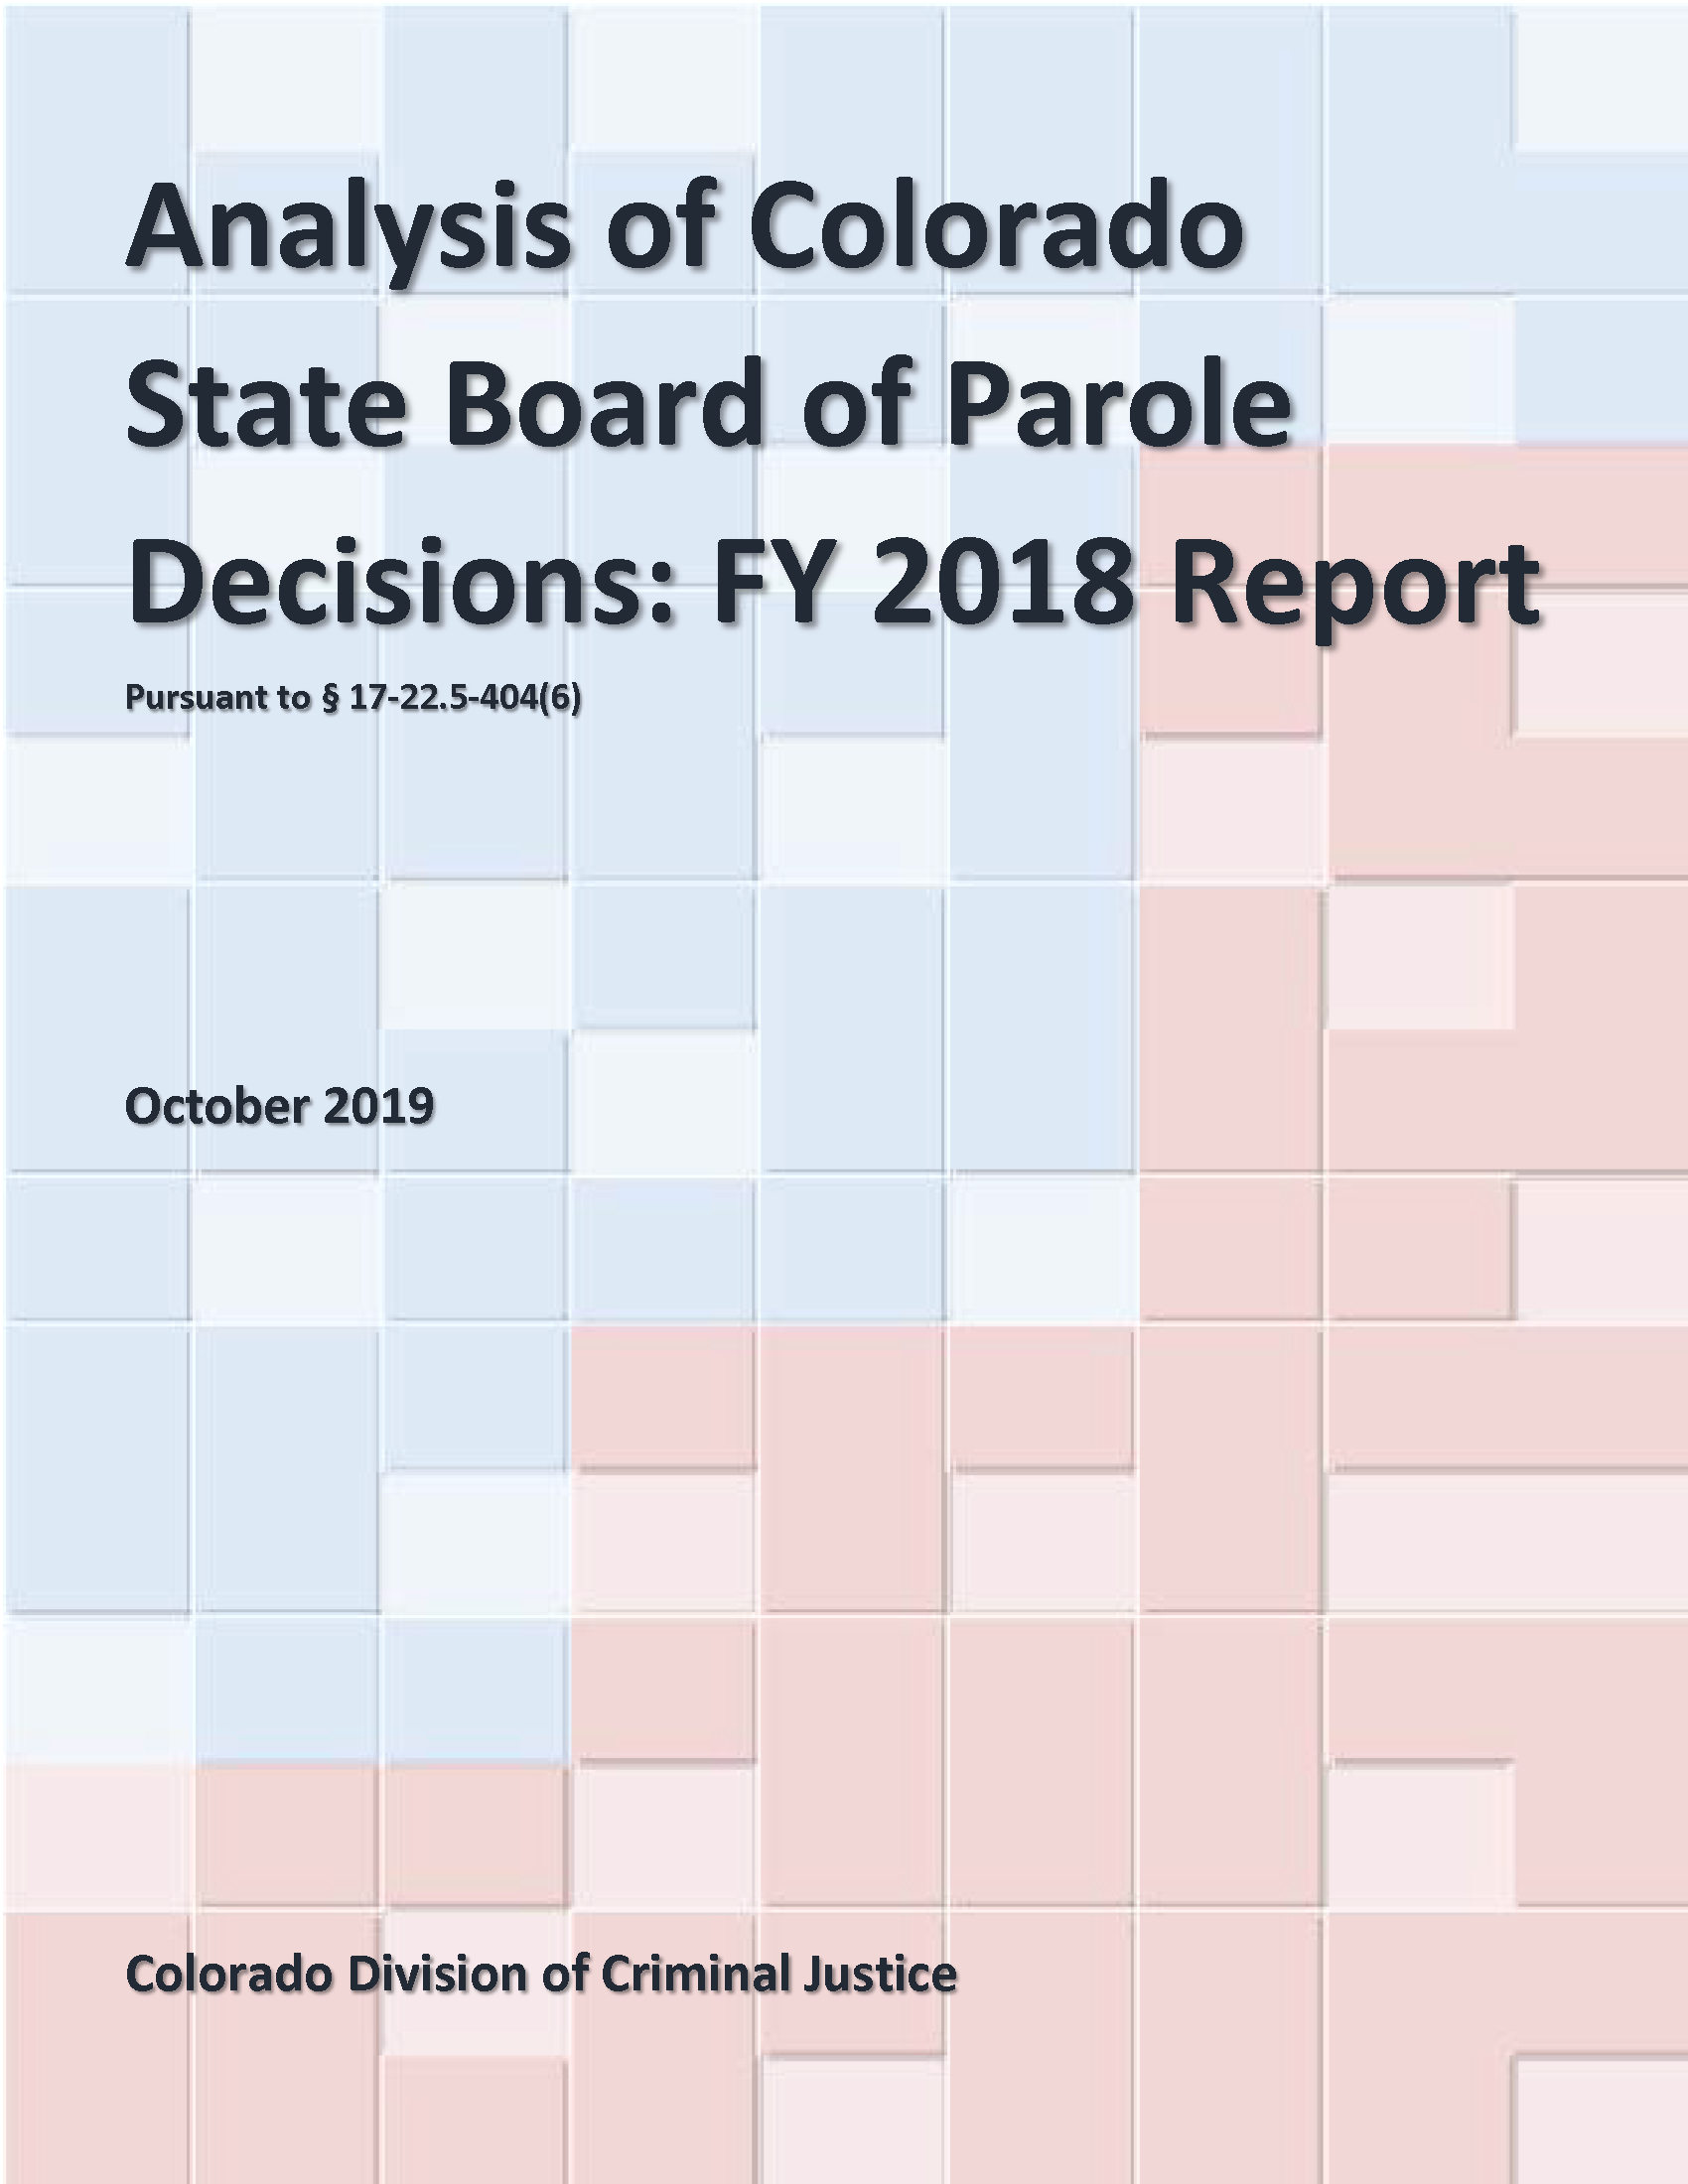 Analysis of Colorado State Board of Parole Decisions: FY 2018 Report (October 2019)